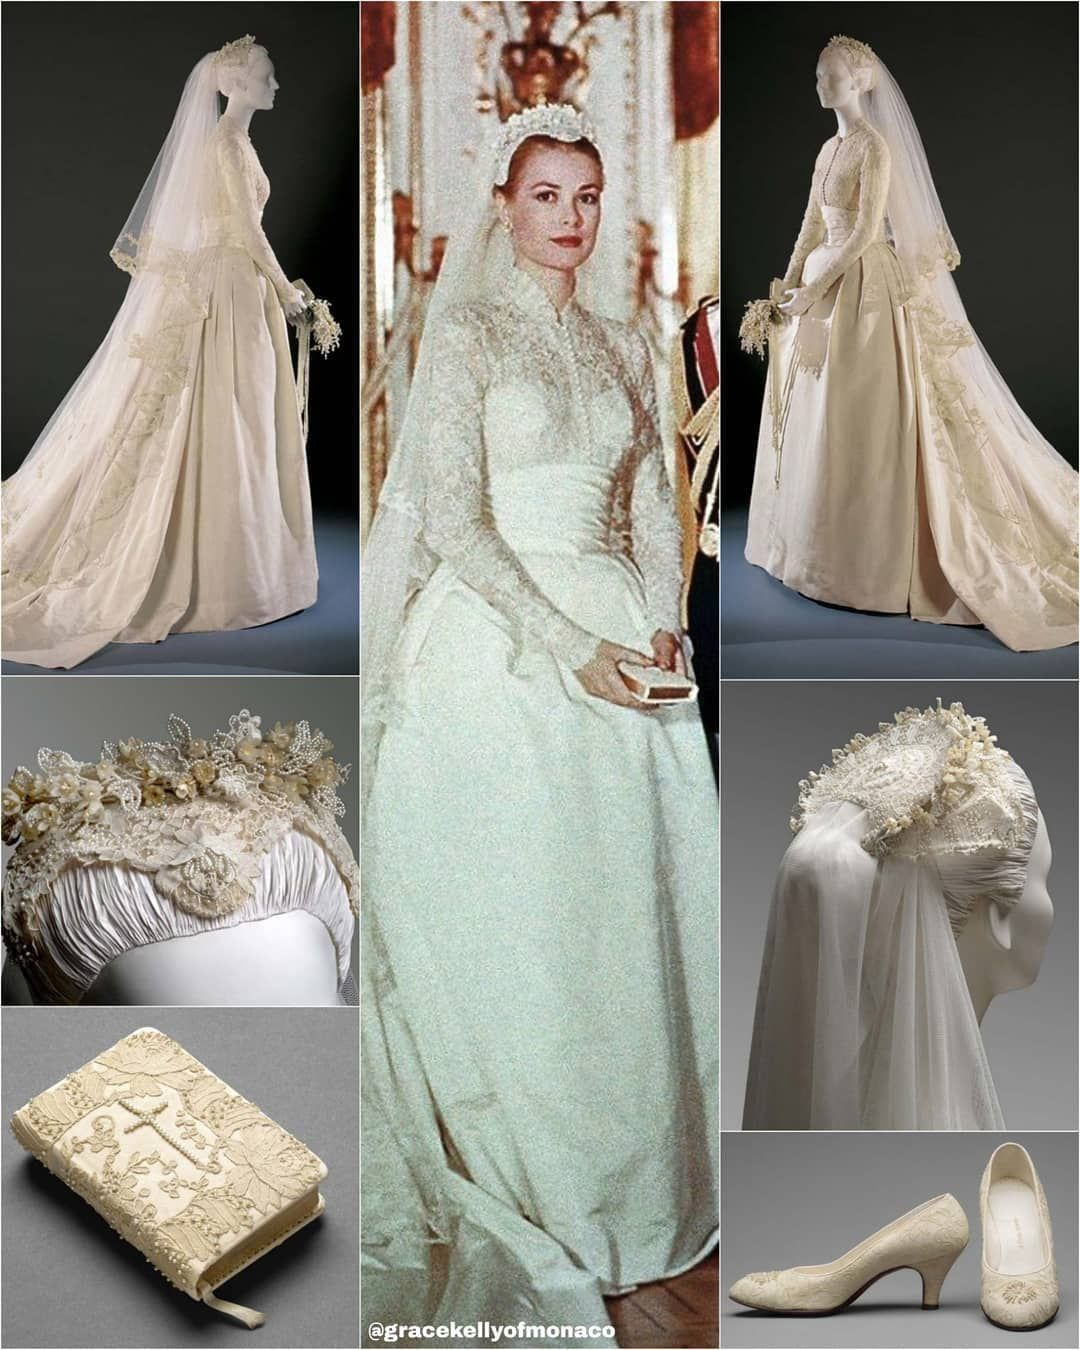 Hsh Princess Grace On Instagram Wedding Of Prince Rainier And Princess Grace In 1956 On 18th April 195 Wedding Dresses Lace Wedding Dresses Princess Grace [ 1350 x 1080 Pixel ]